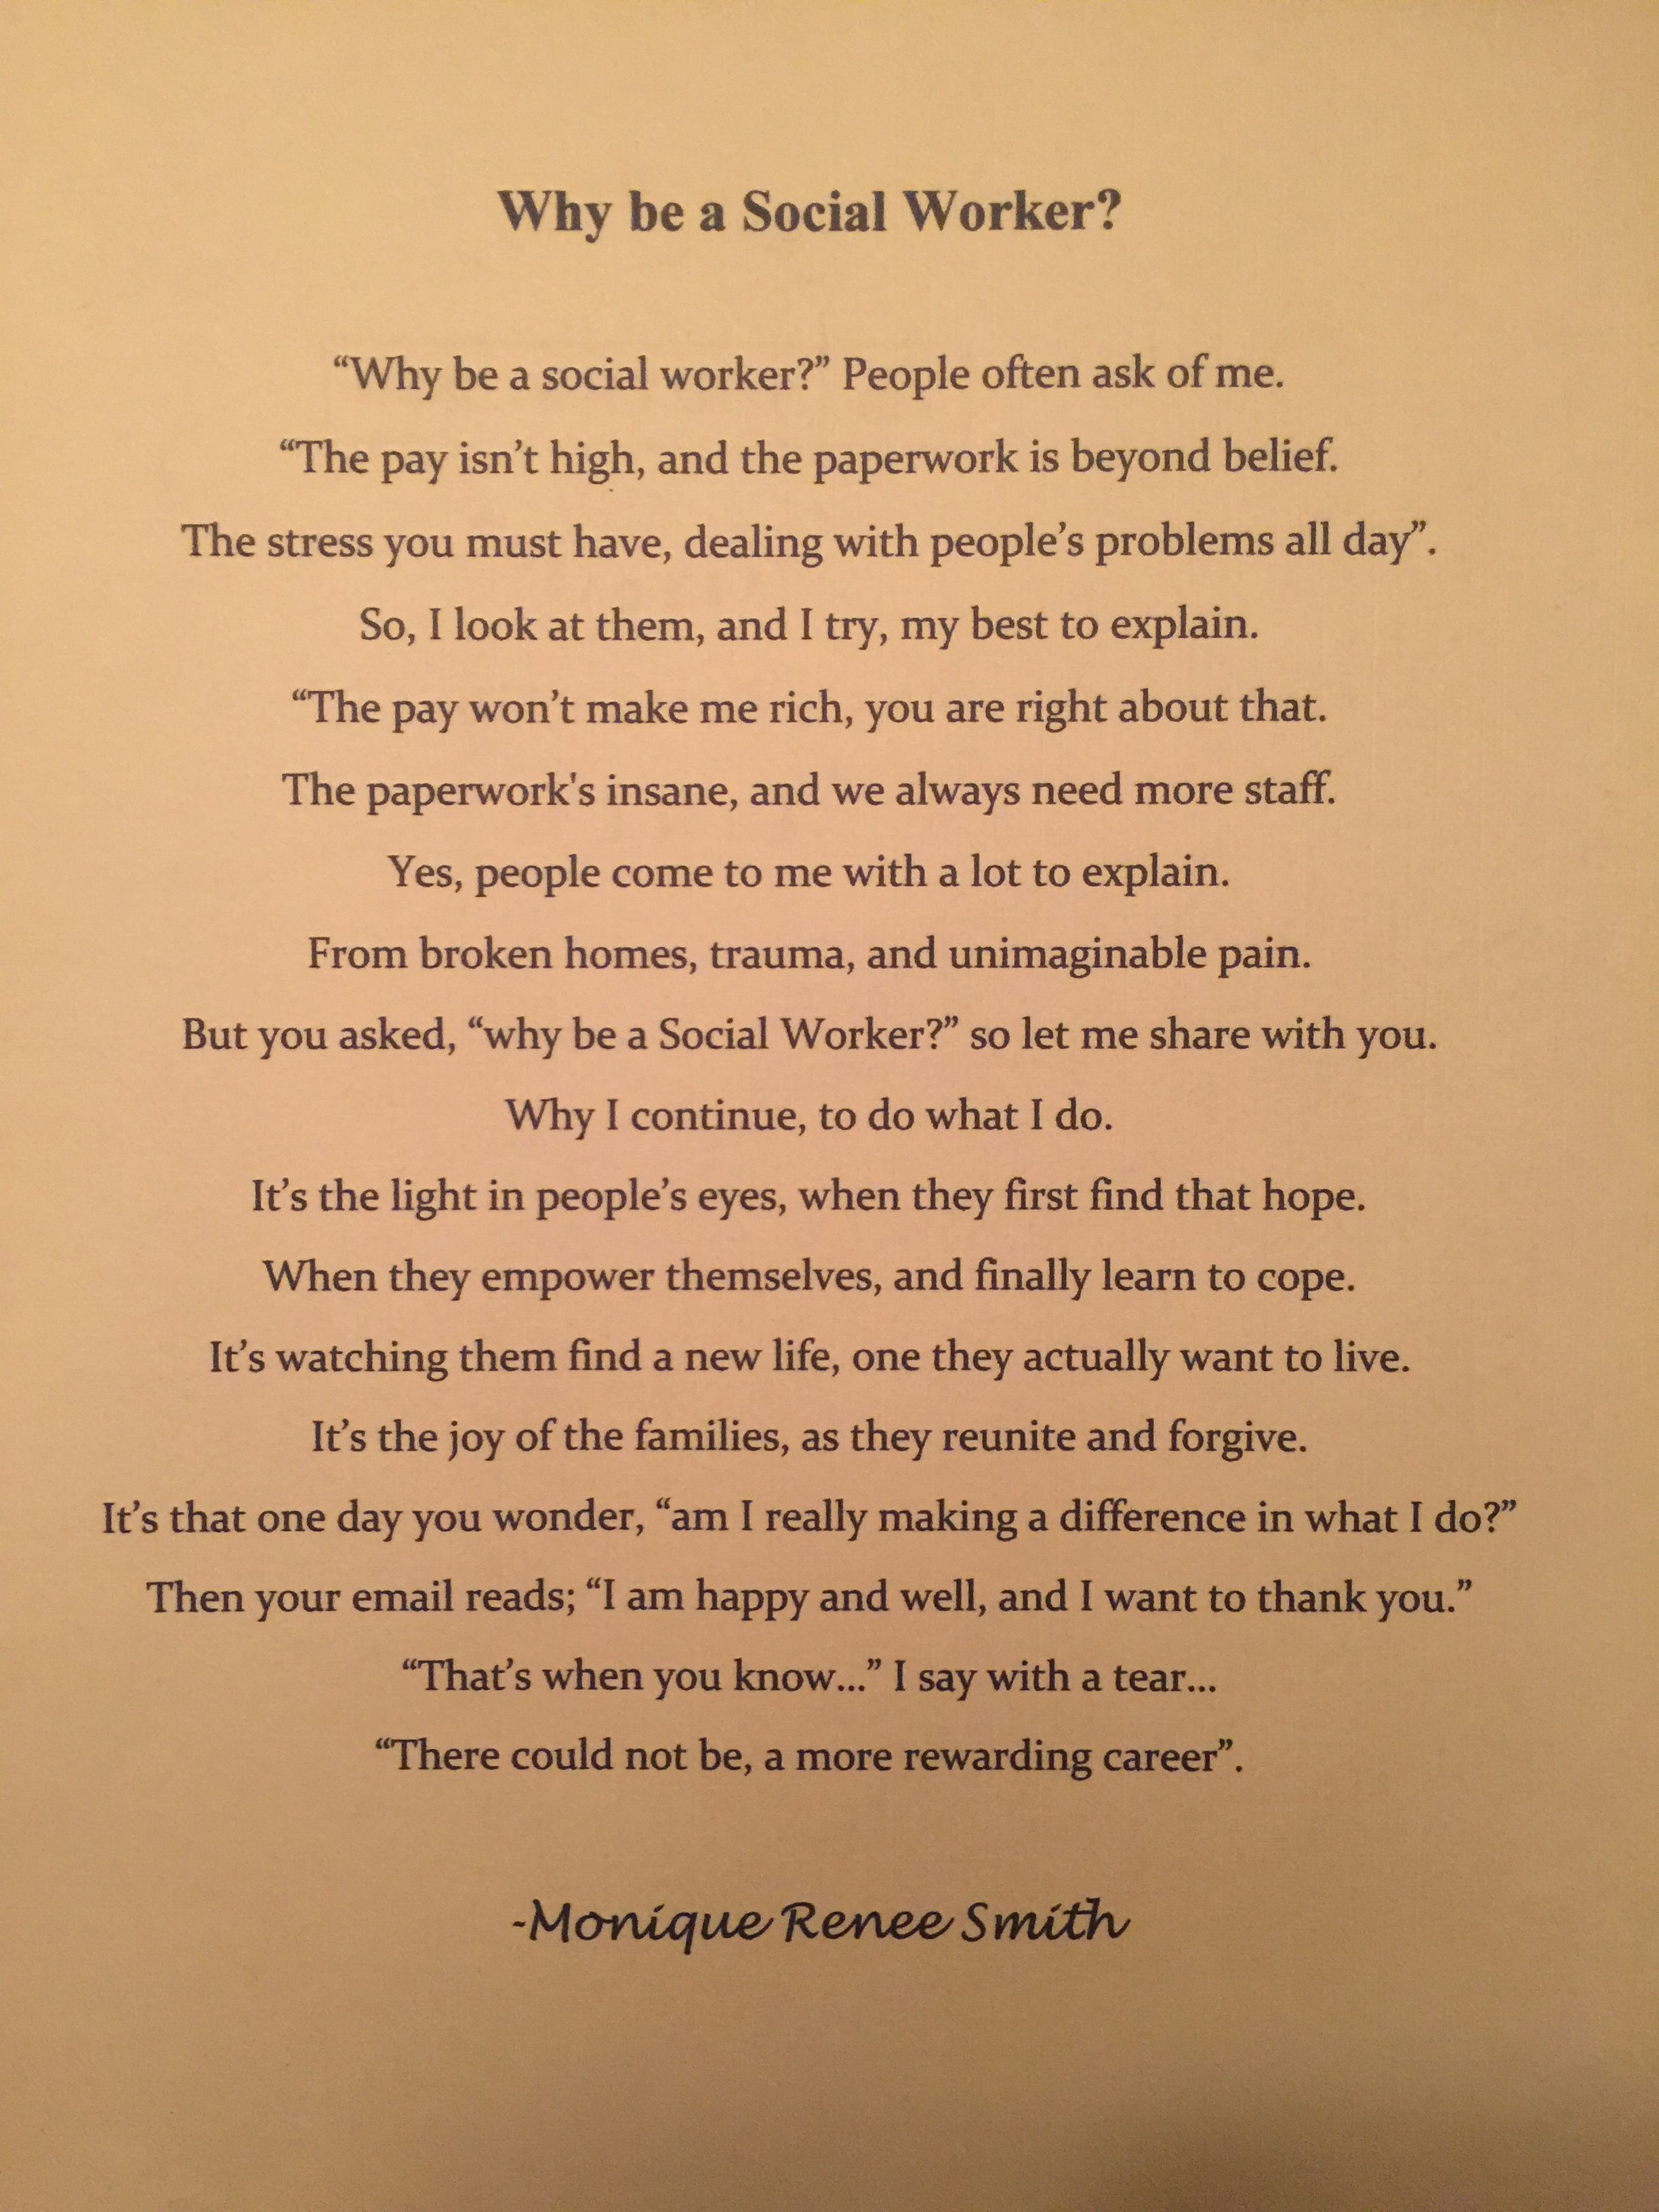 Why Be A Social Worker Poem Social Work Quotes Social Worker Quotes Social Work Theories